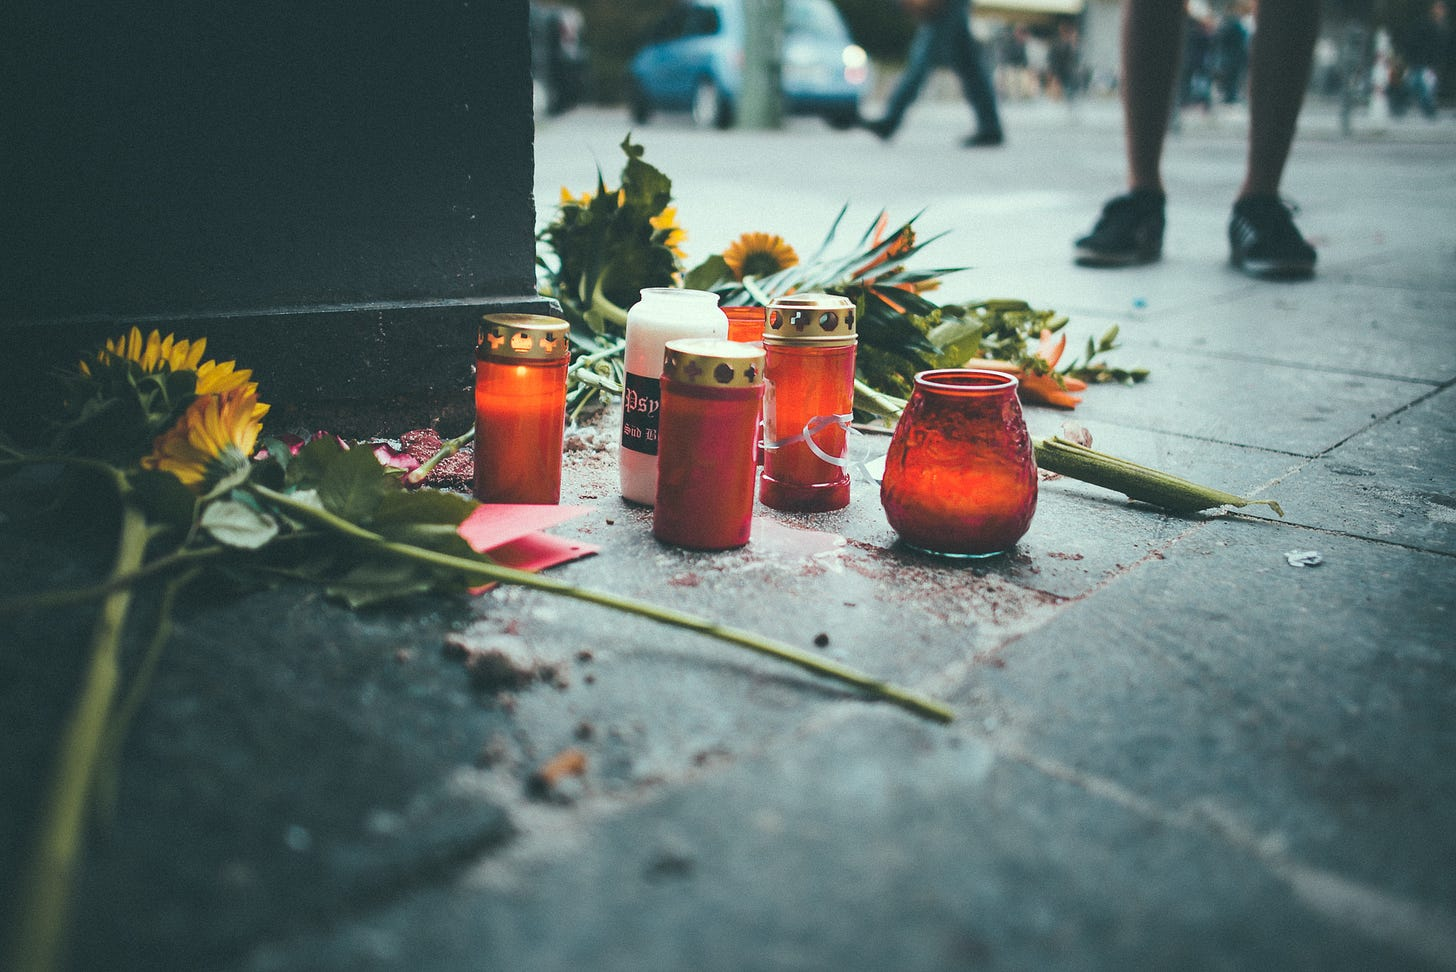 Candle and flowers on the ground in a public street as people walk by and one person stands by them